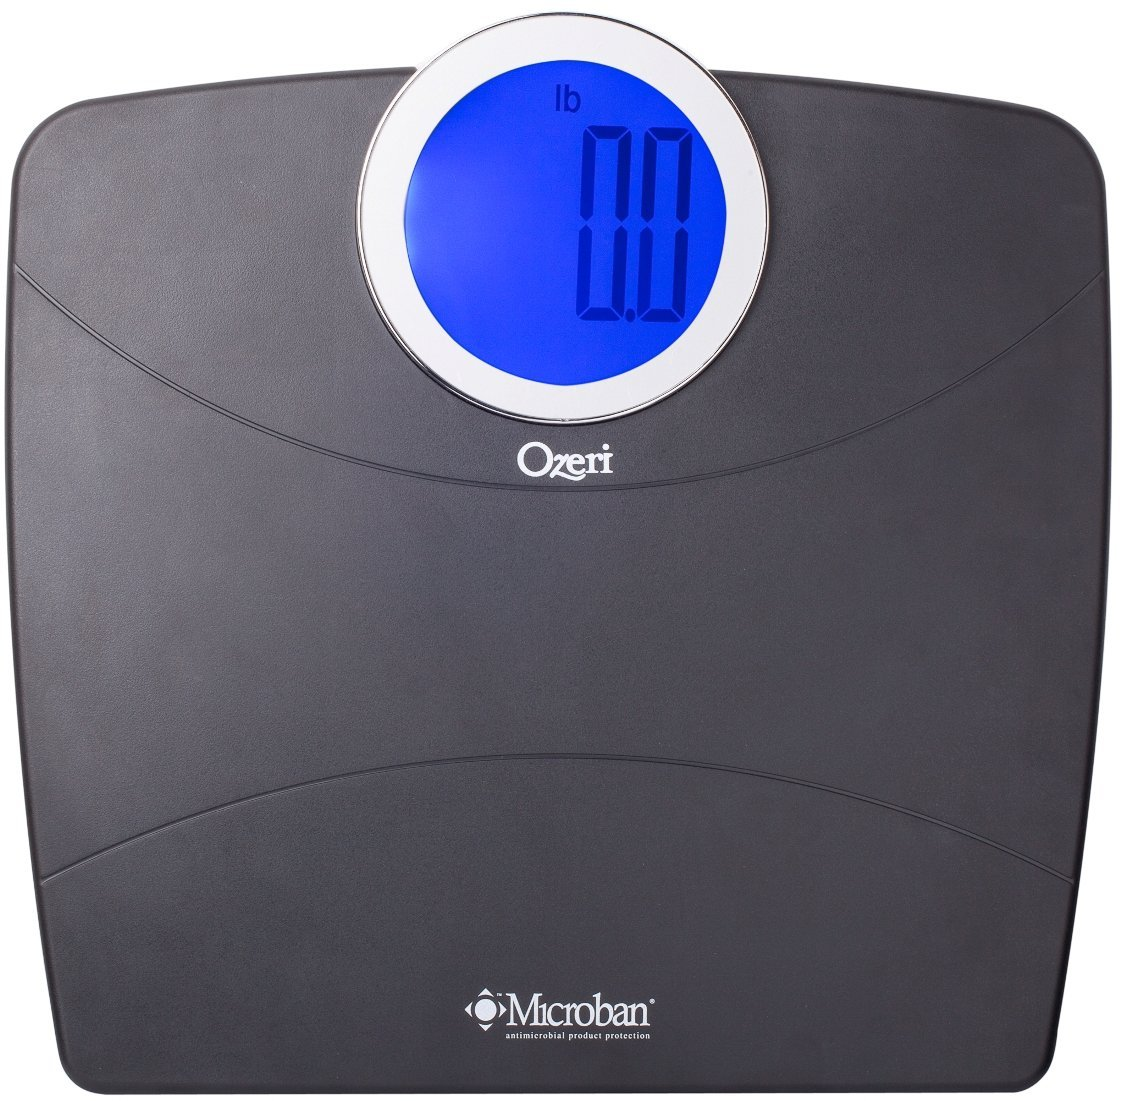 Ozeri Weightmaster Digital Bathroom Scale Review Window